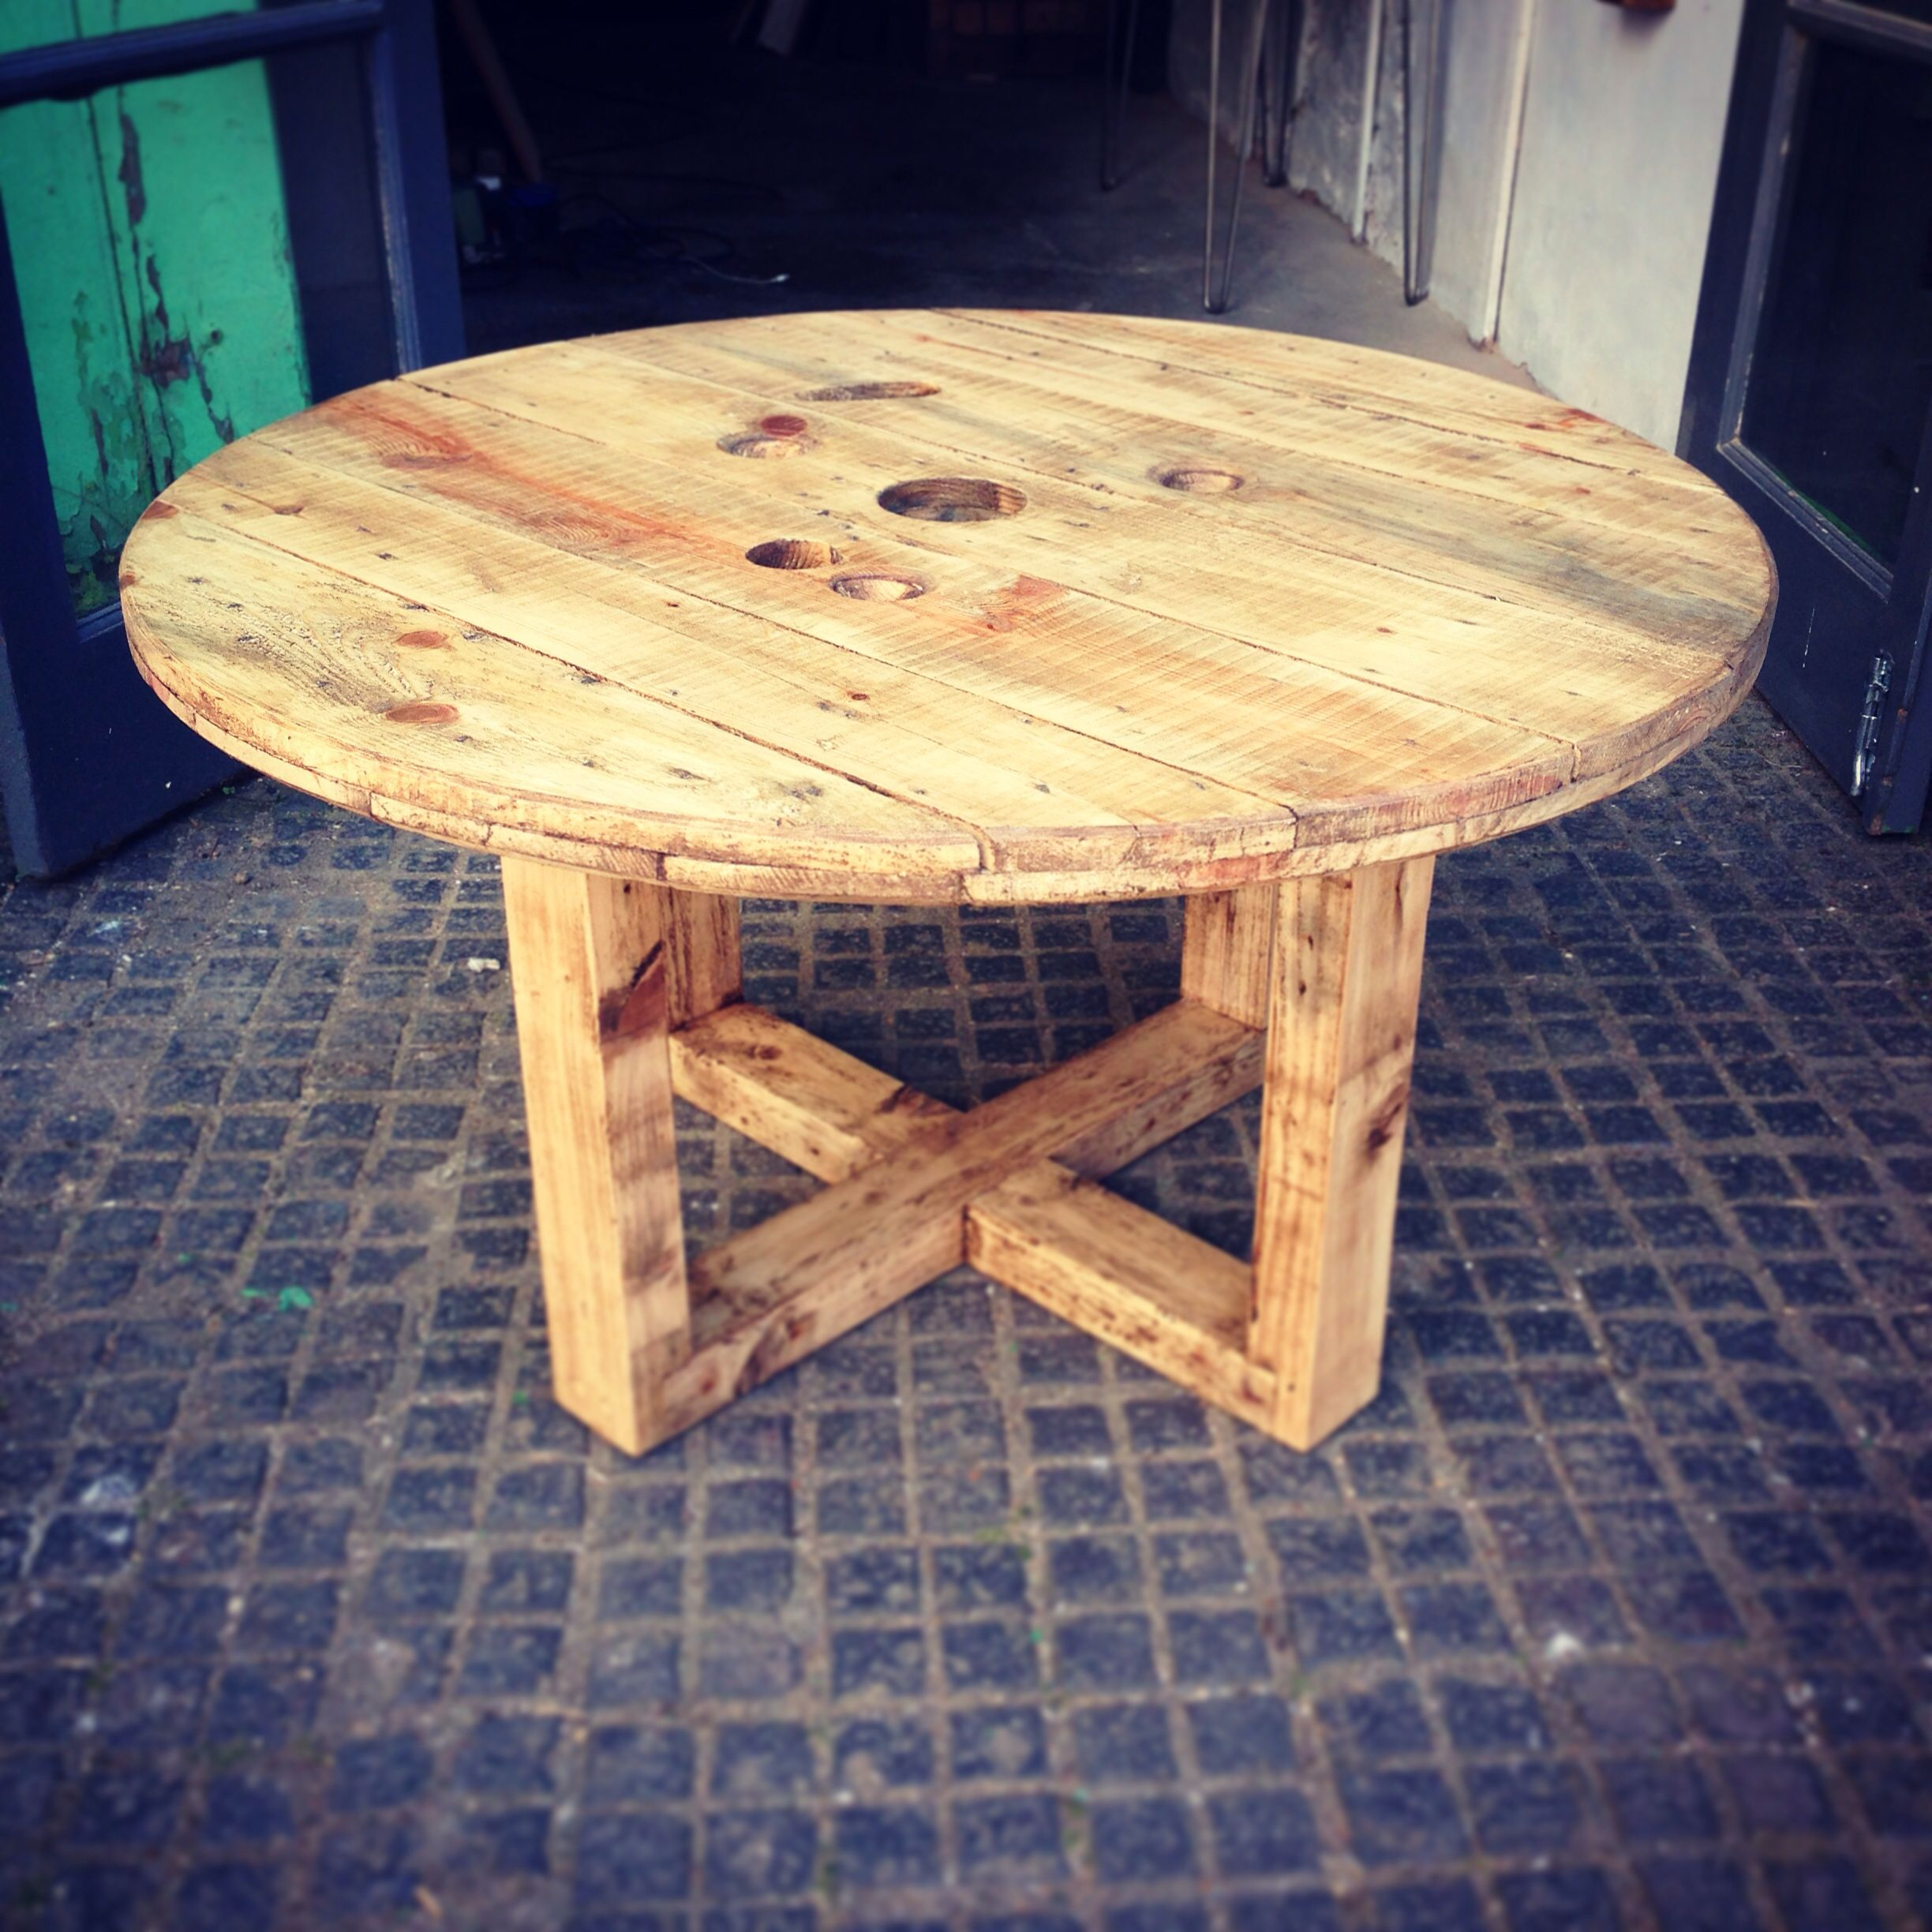 Cable drum coffee table with x frame base